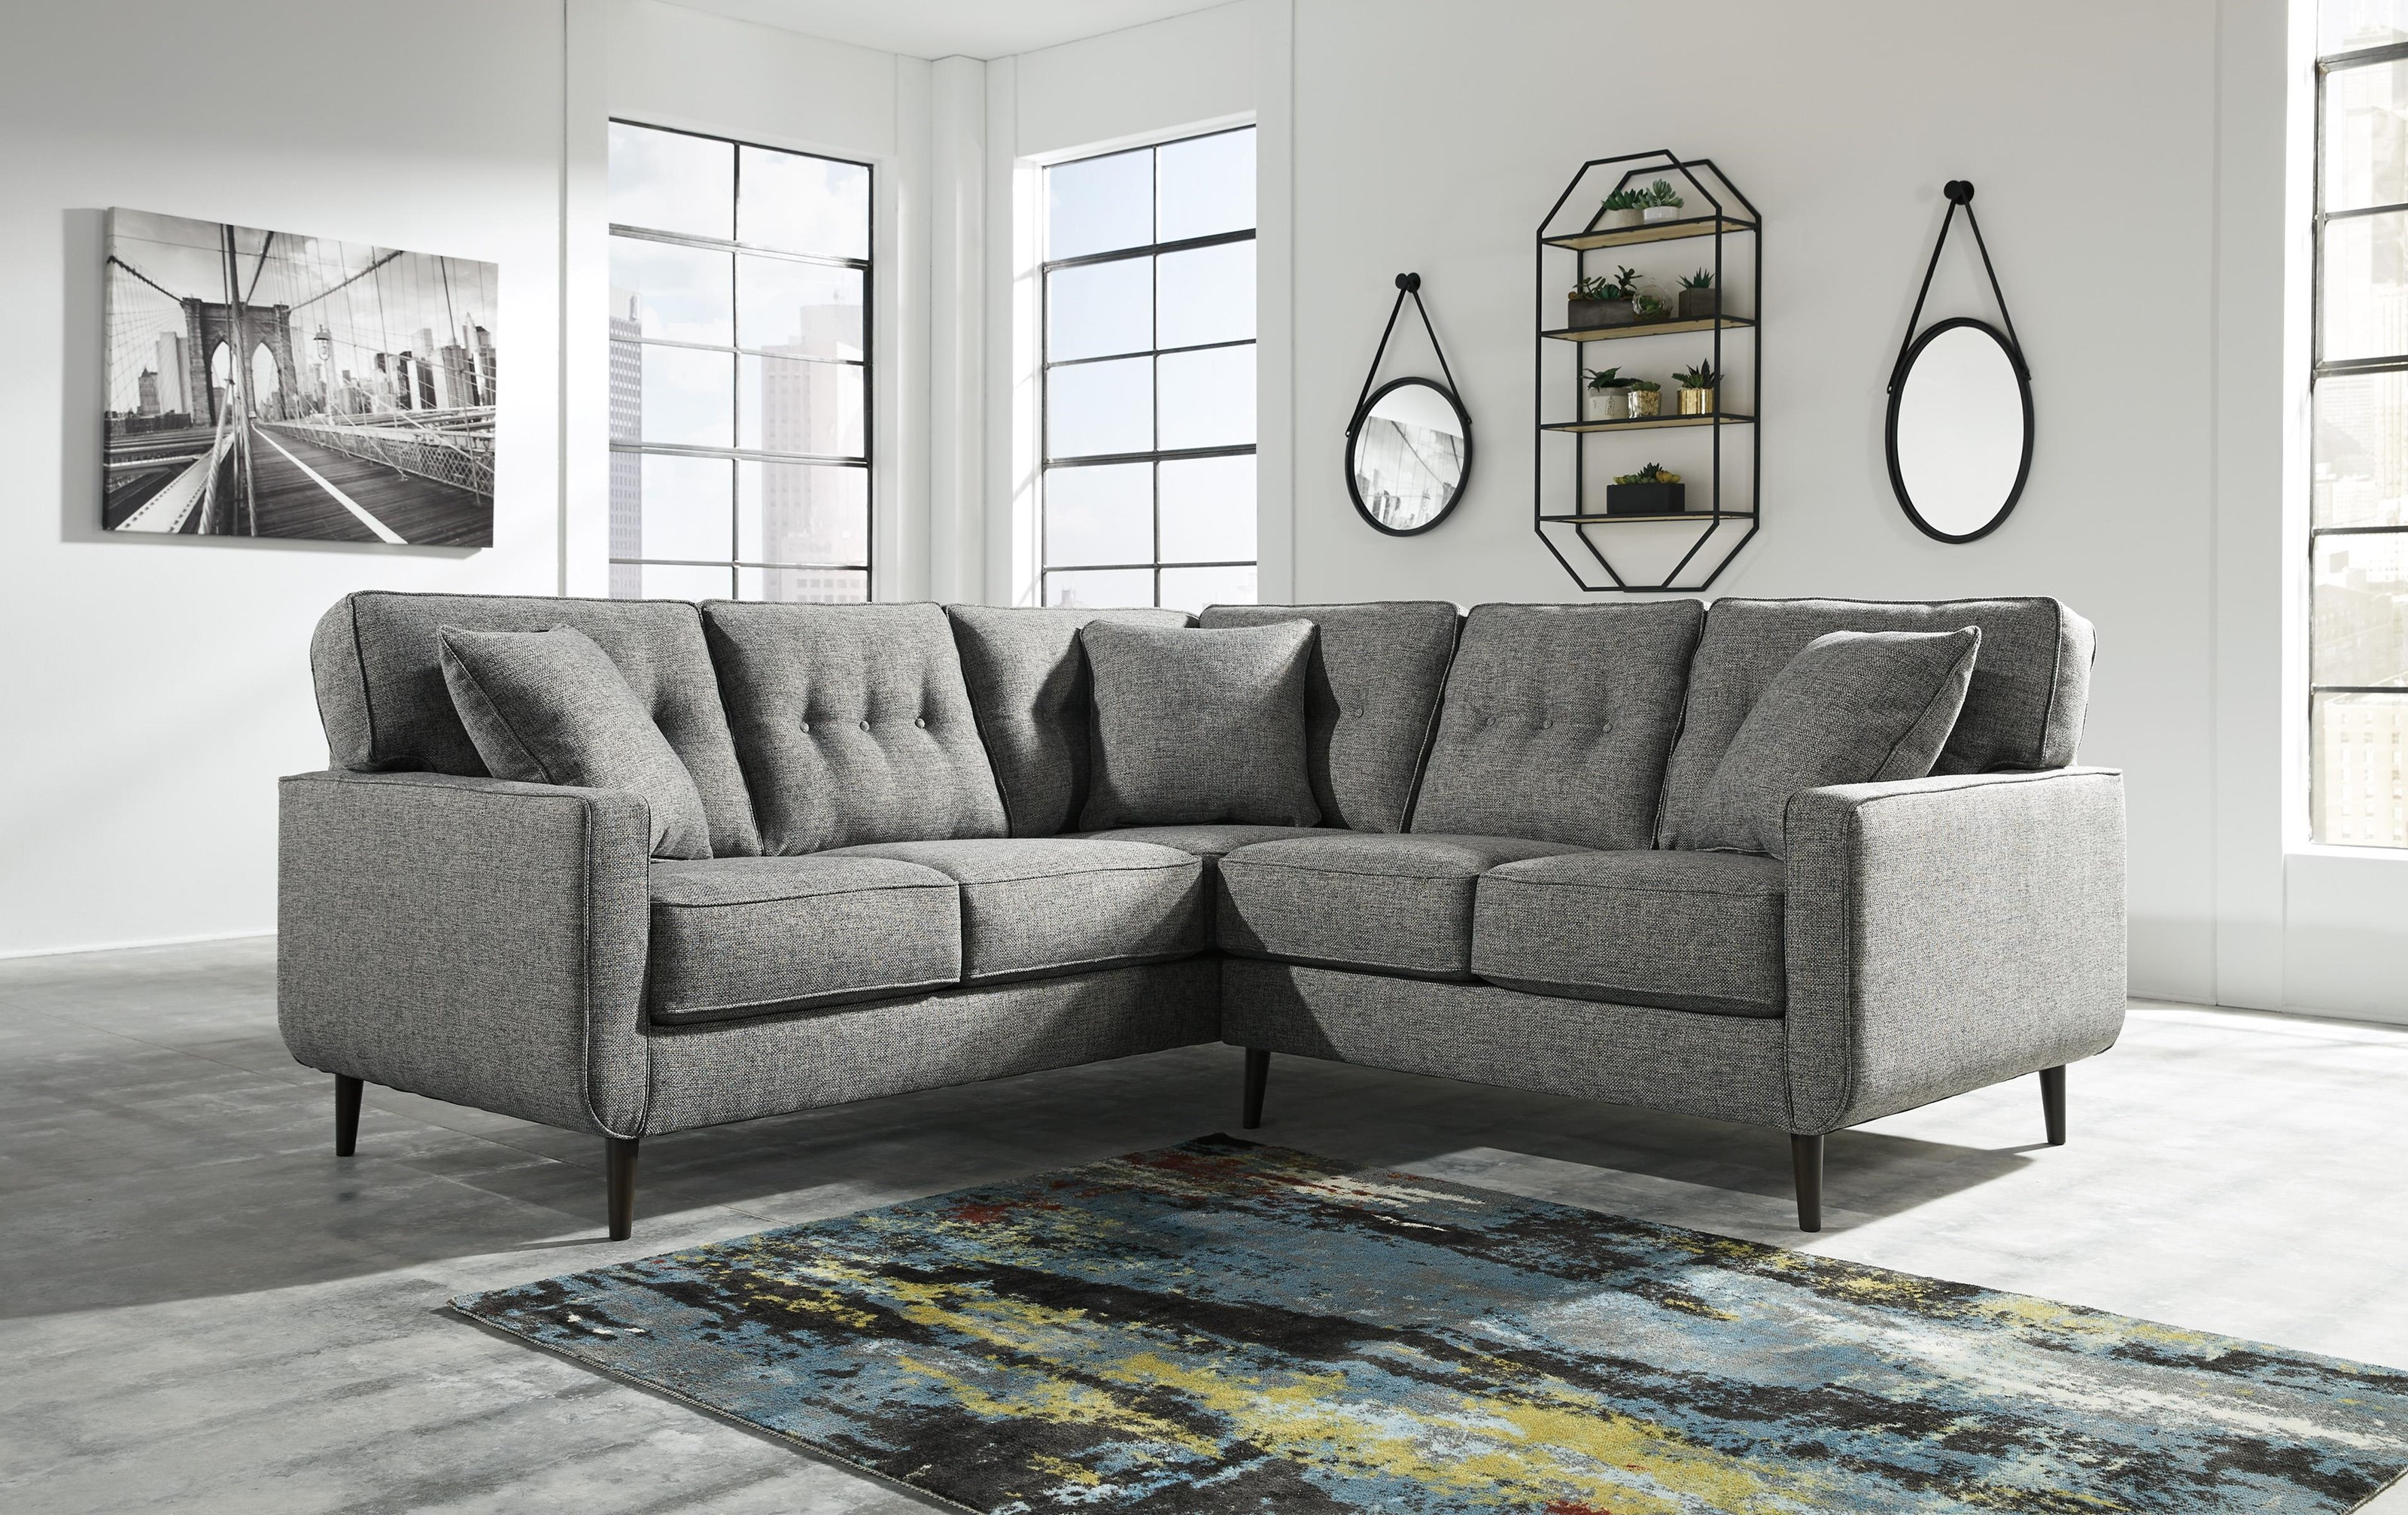 Zardoni 2 Piece Sectional With Left Arm Facing Sofa